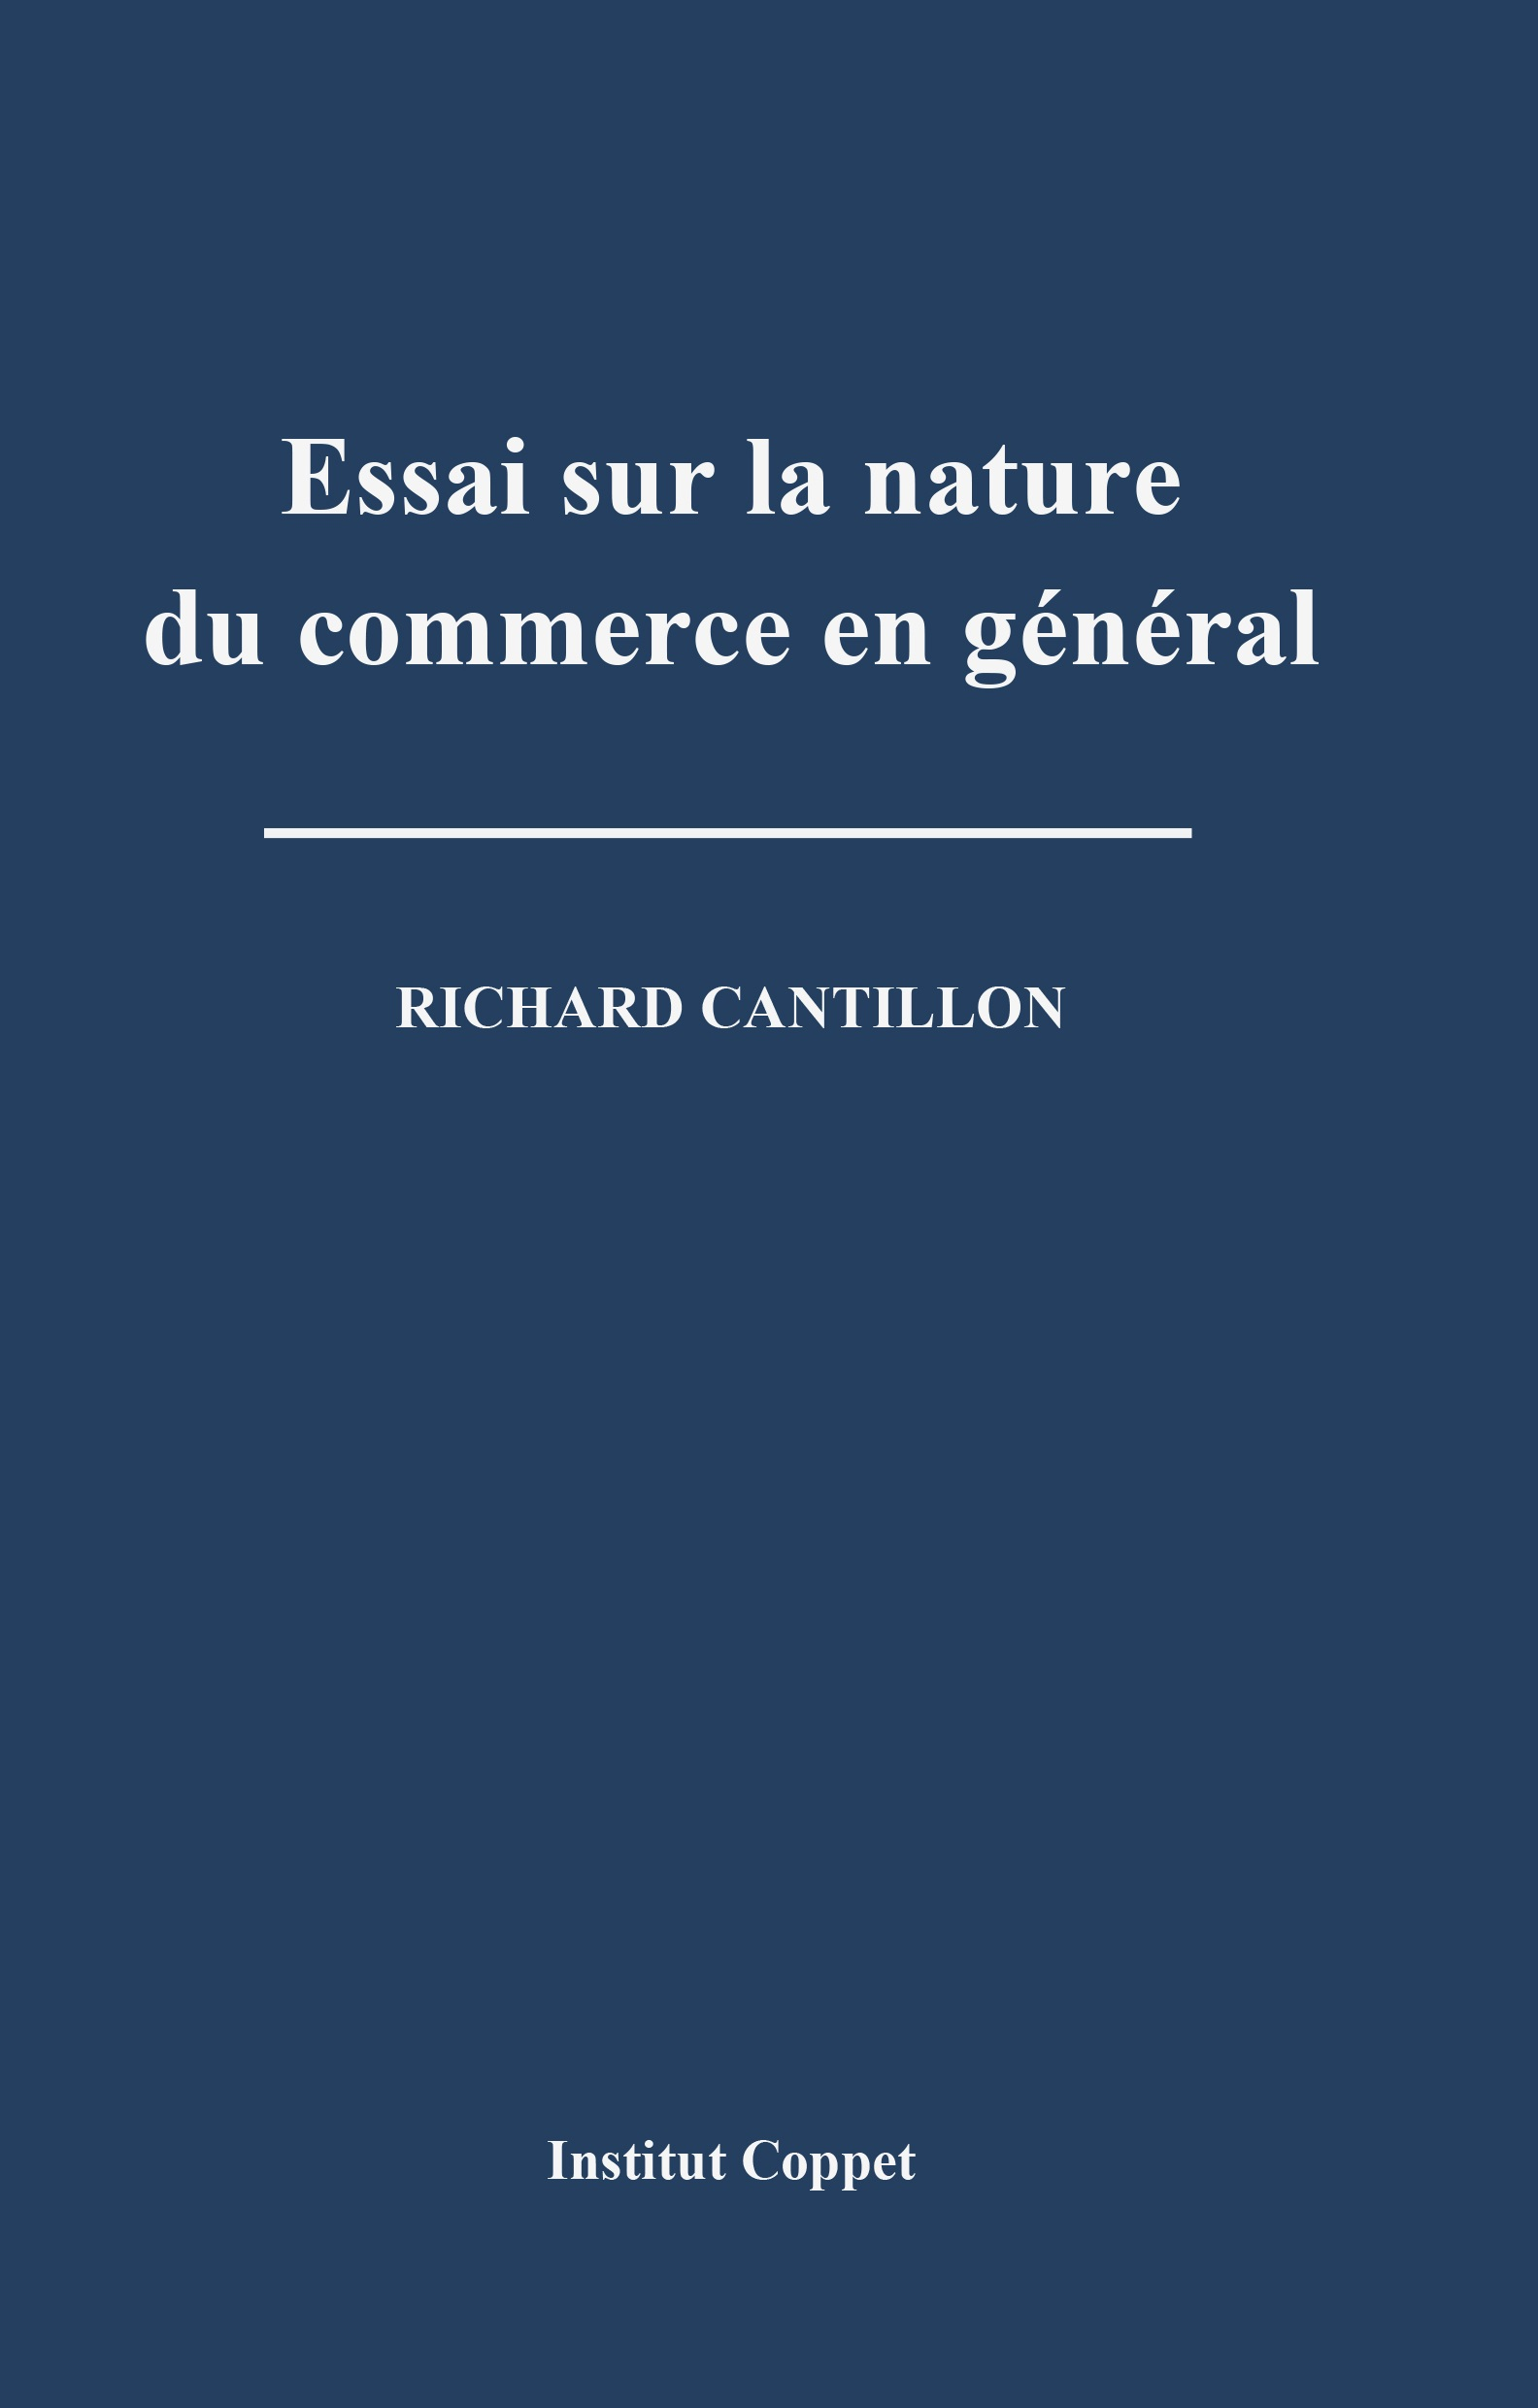 essay on the nature of trade in general richard cantillon  essay on the nature of trade in general richard cantillon google